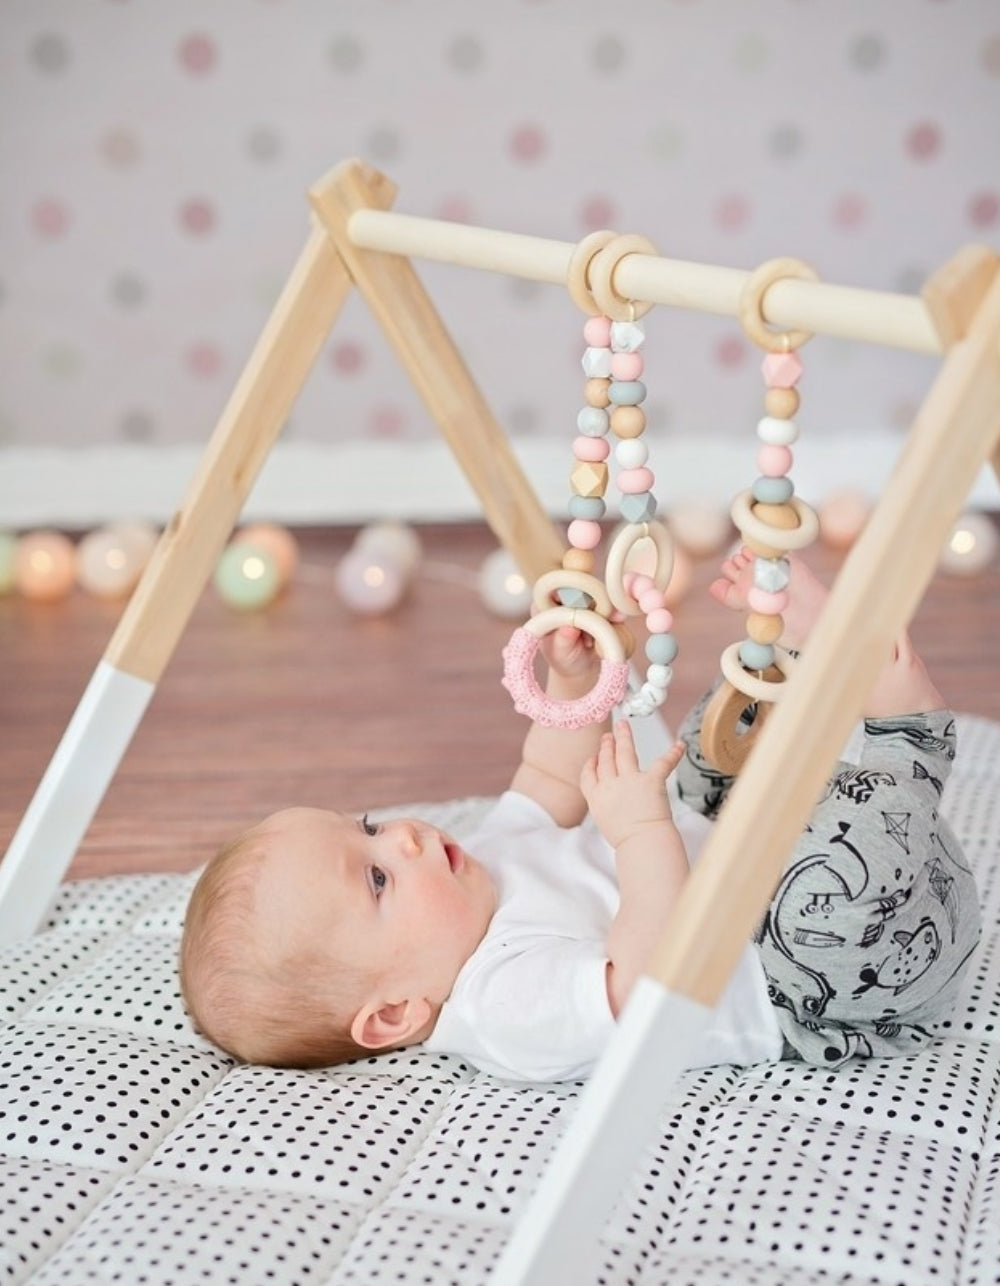 wooden gym toys set for a girl nursery